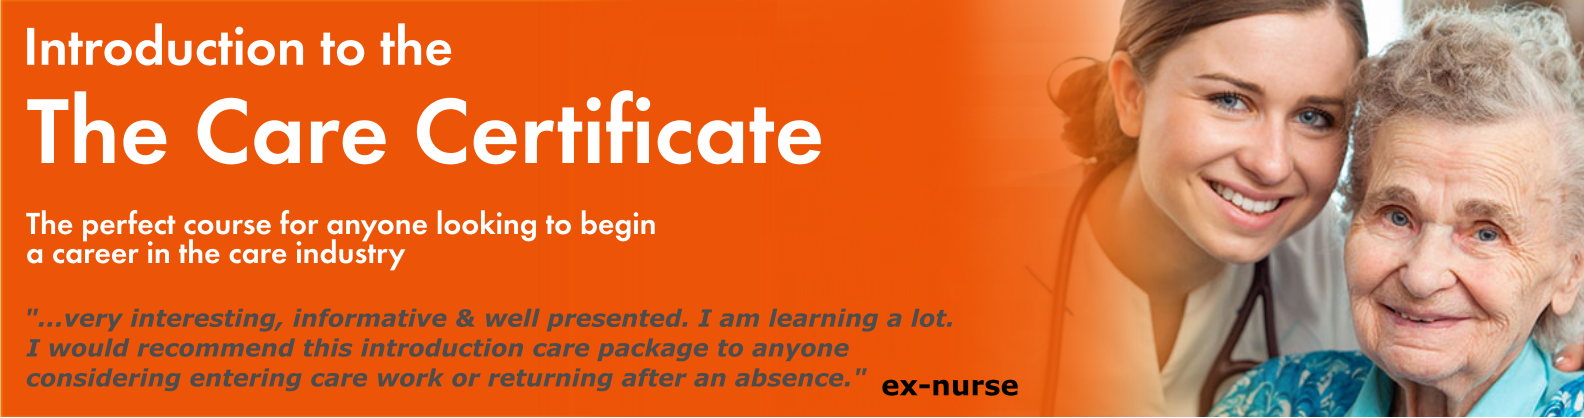 Care Certifcate Banner